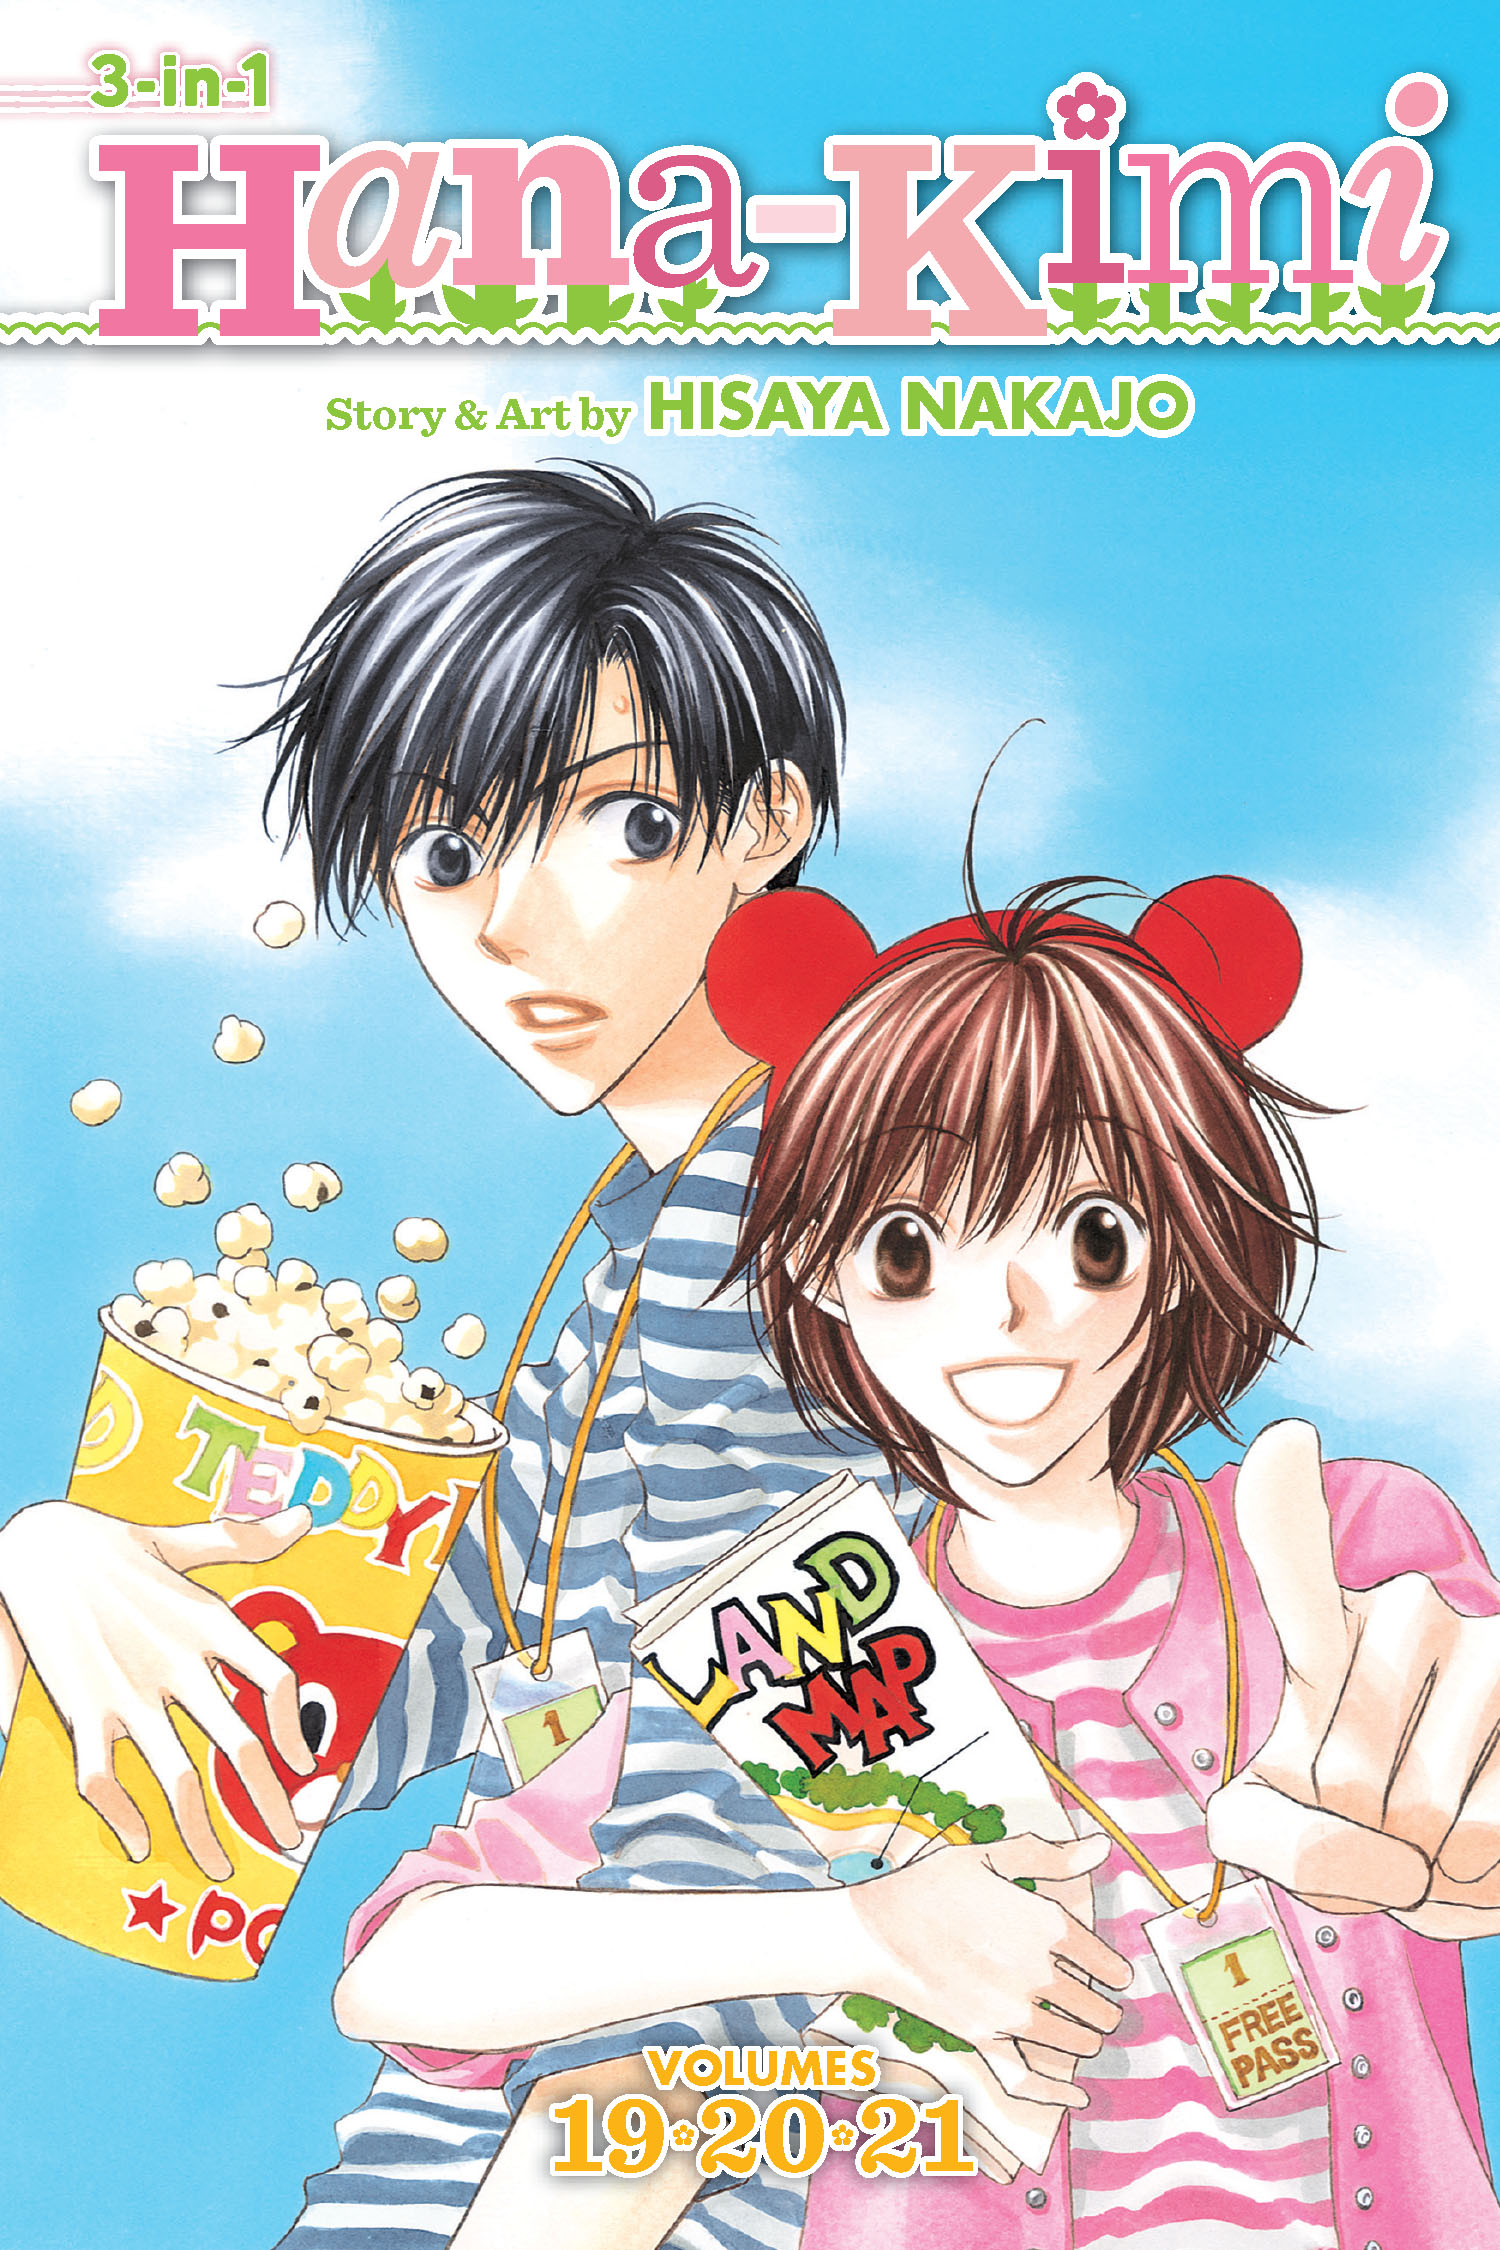 Hana-kimi-(3-in-1-edition)-vol-7-9781421554853_hr